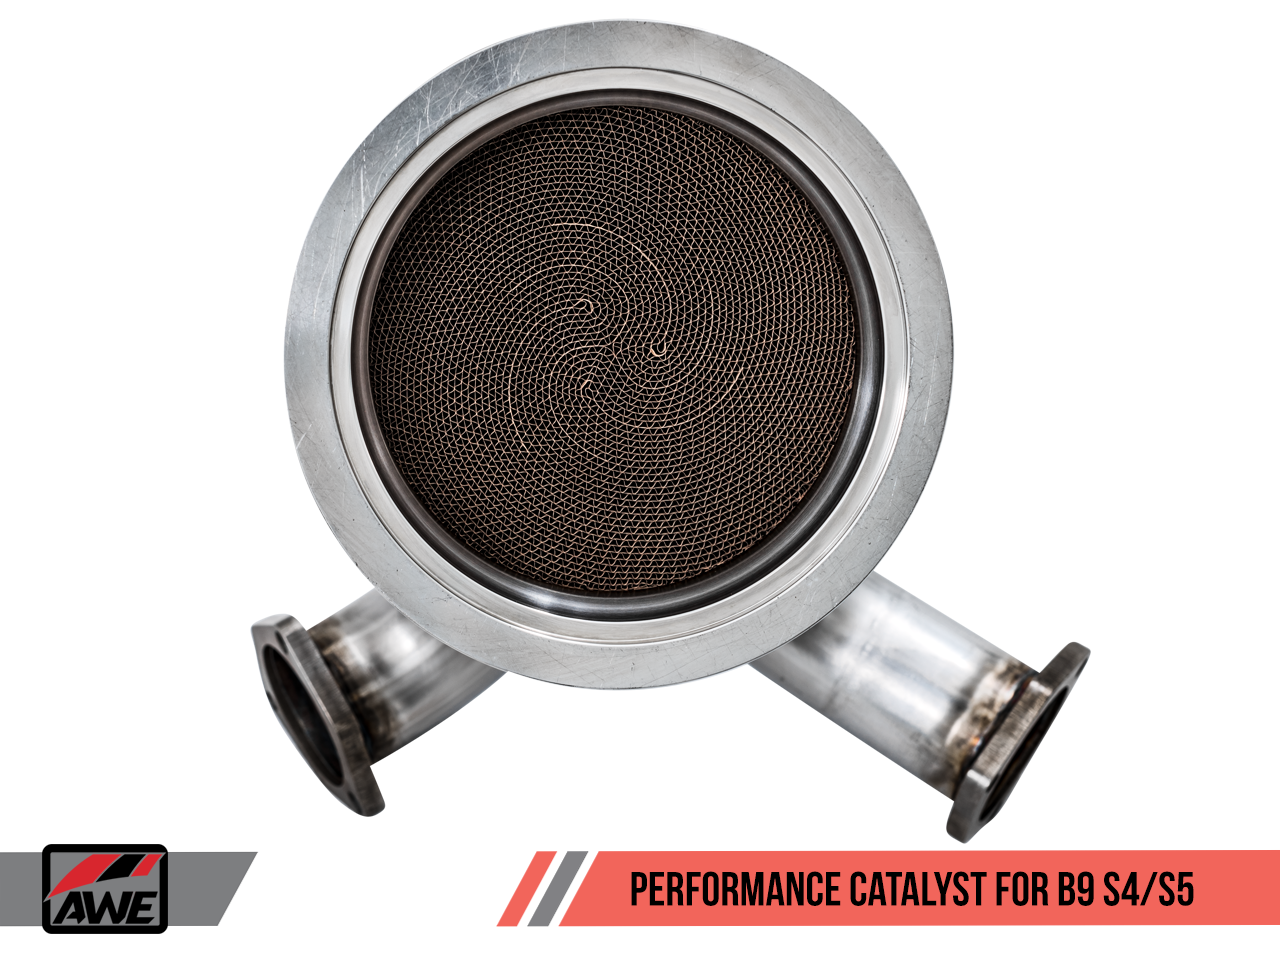 AWE Tuning Performance Catalyst for Audi B9 S4/S5 3 0T